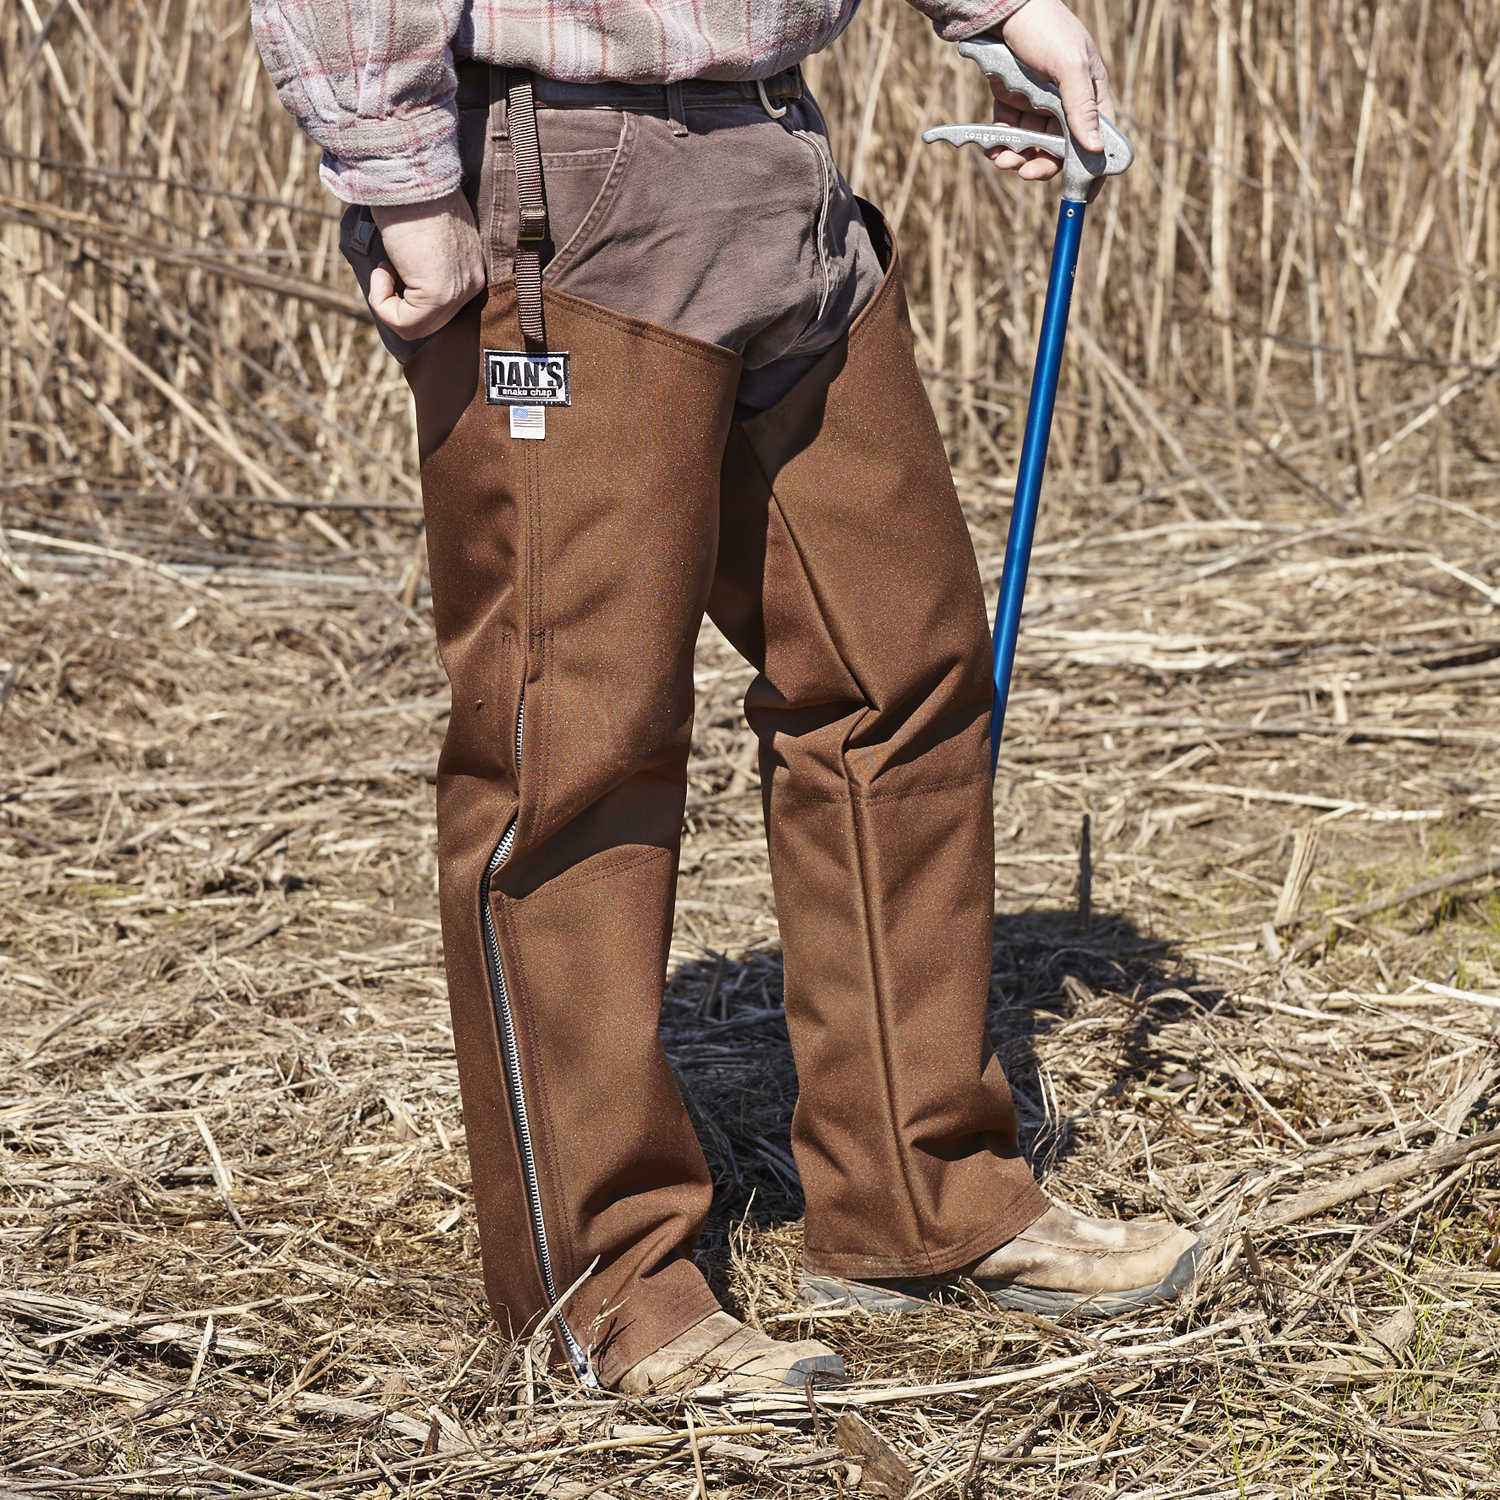 """Dan's Hunting Gear Snake Predector Chaps X-Large 28"""" Inseam"""